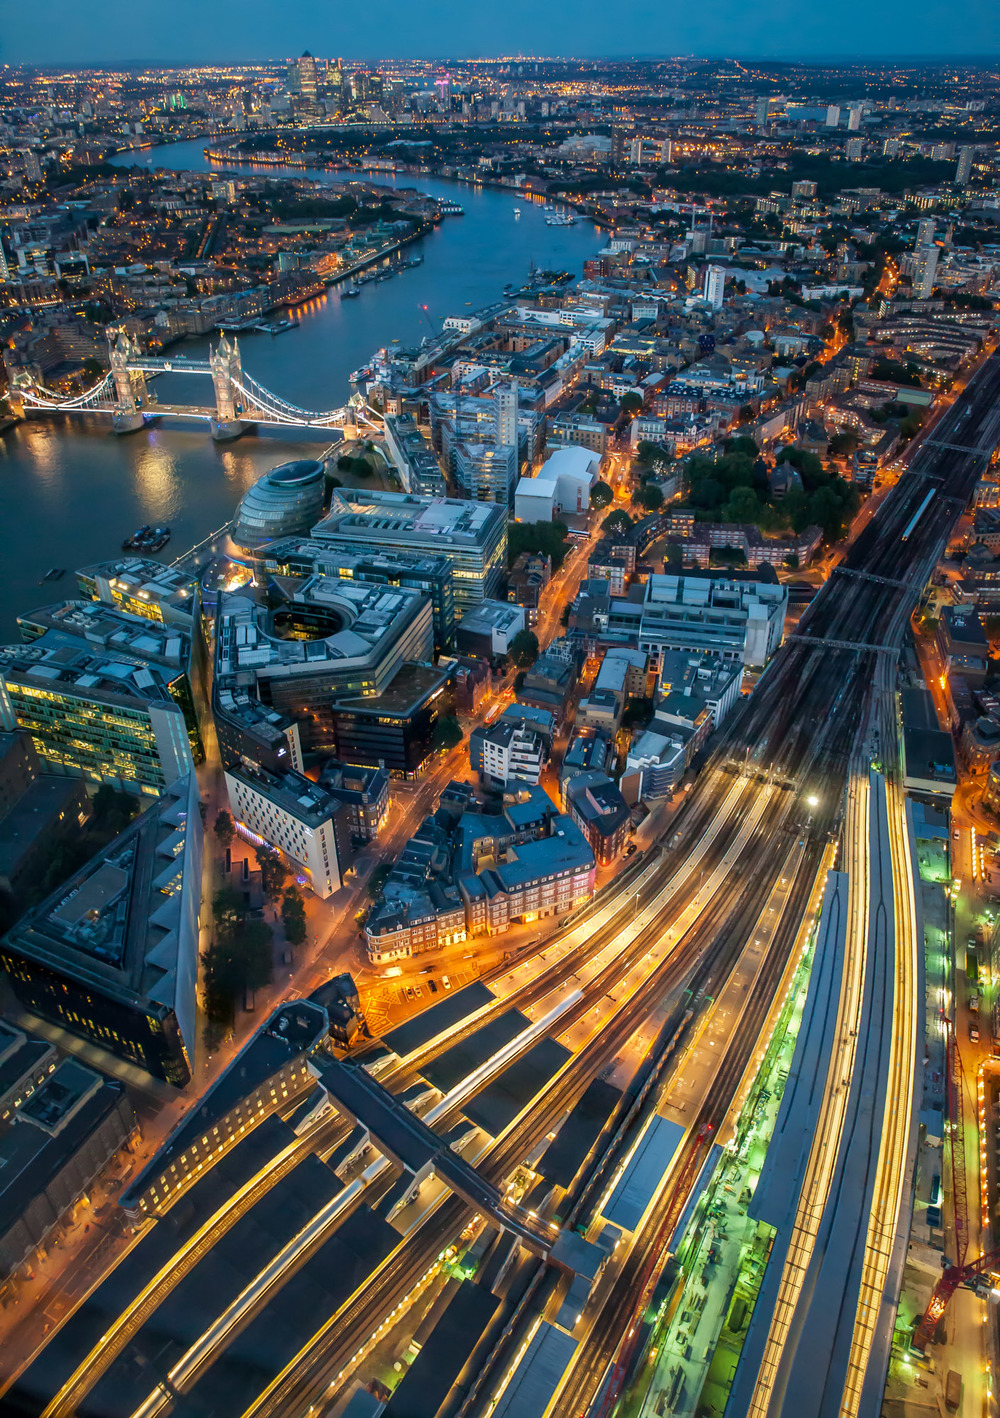 Tracks from London Bridge rail station snake out to the South East and beyond while Tower Bridge and Canary Wharf light up the skyline